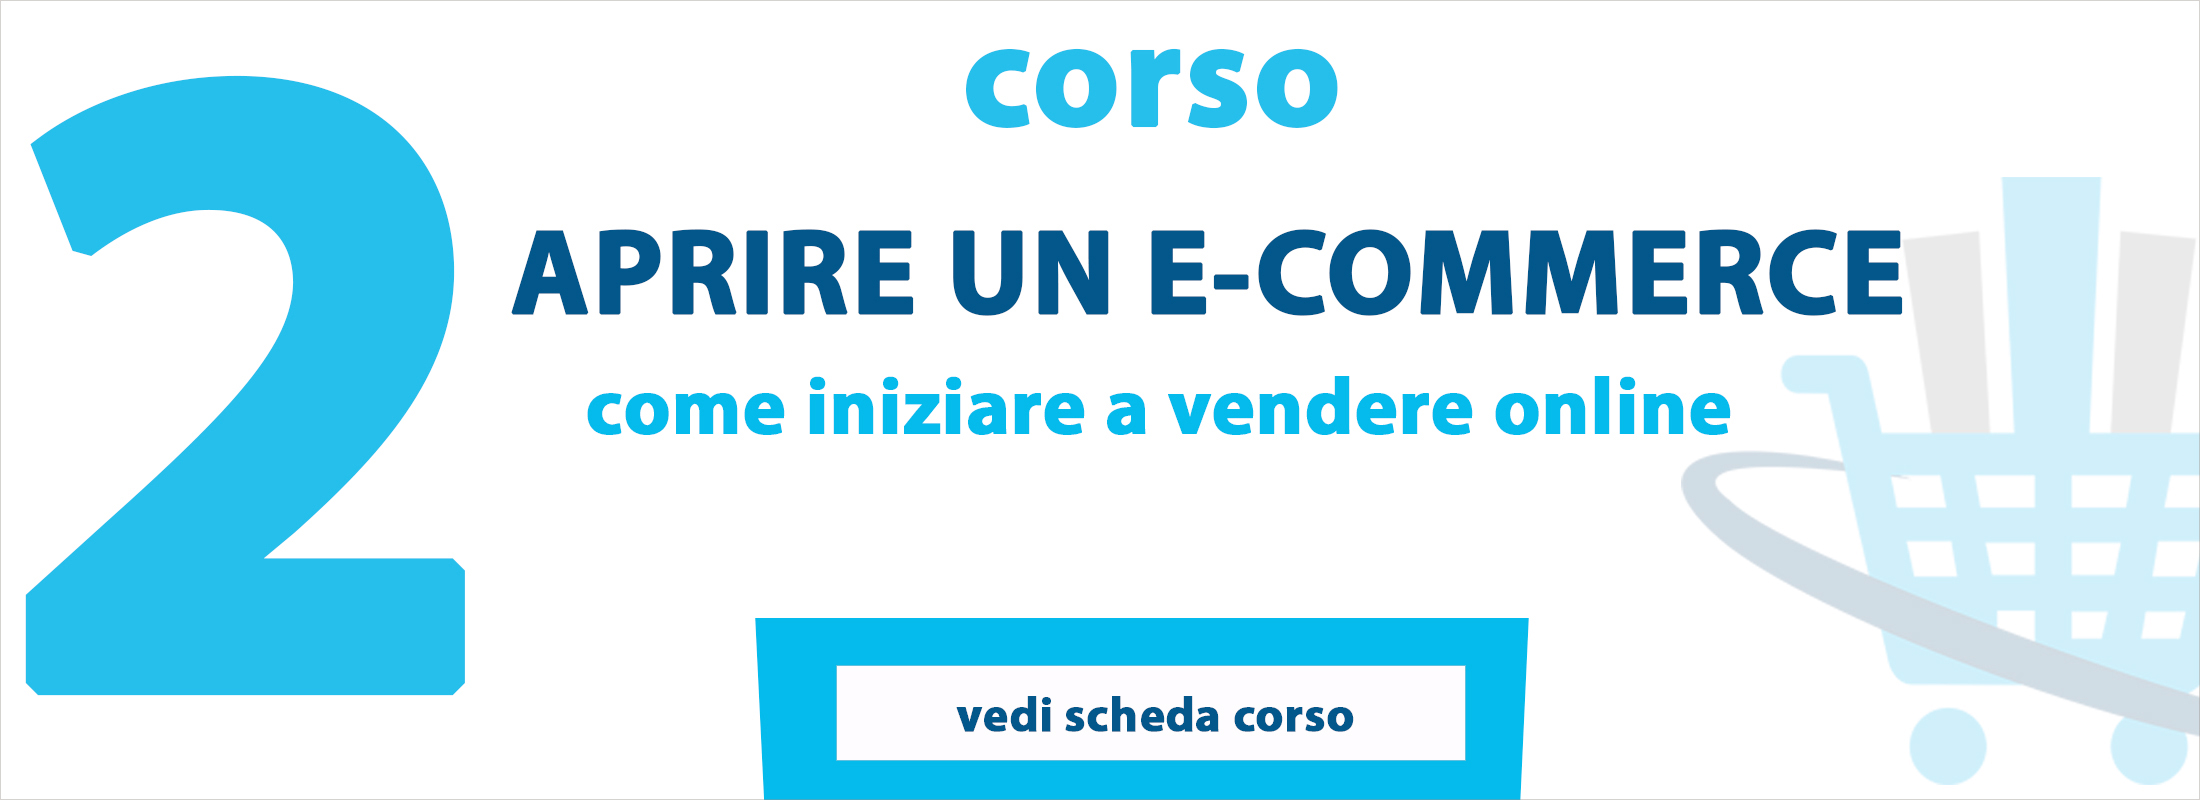 Corsi E-Commerce per vendere online su internet - Web marketing per e-commerce  Corsi ecommerce ...